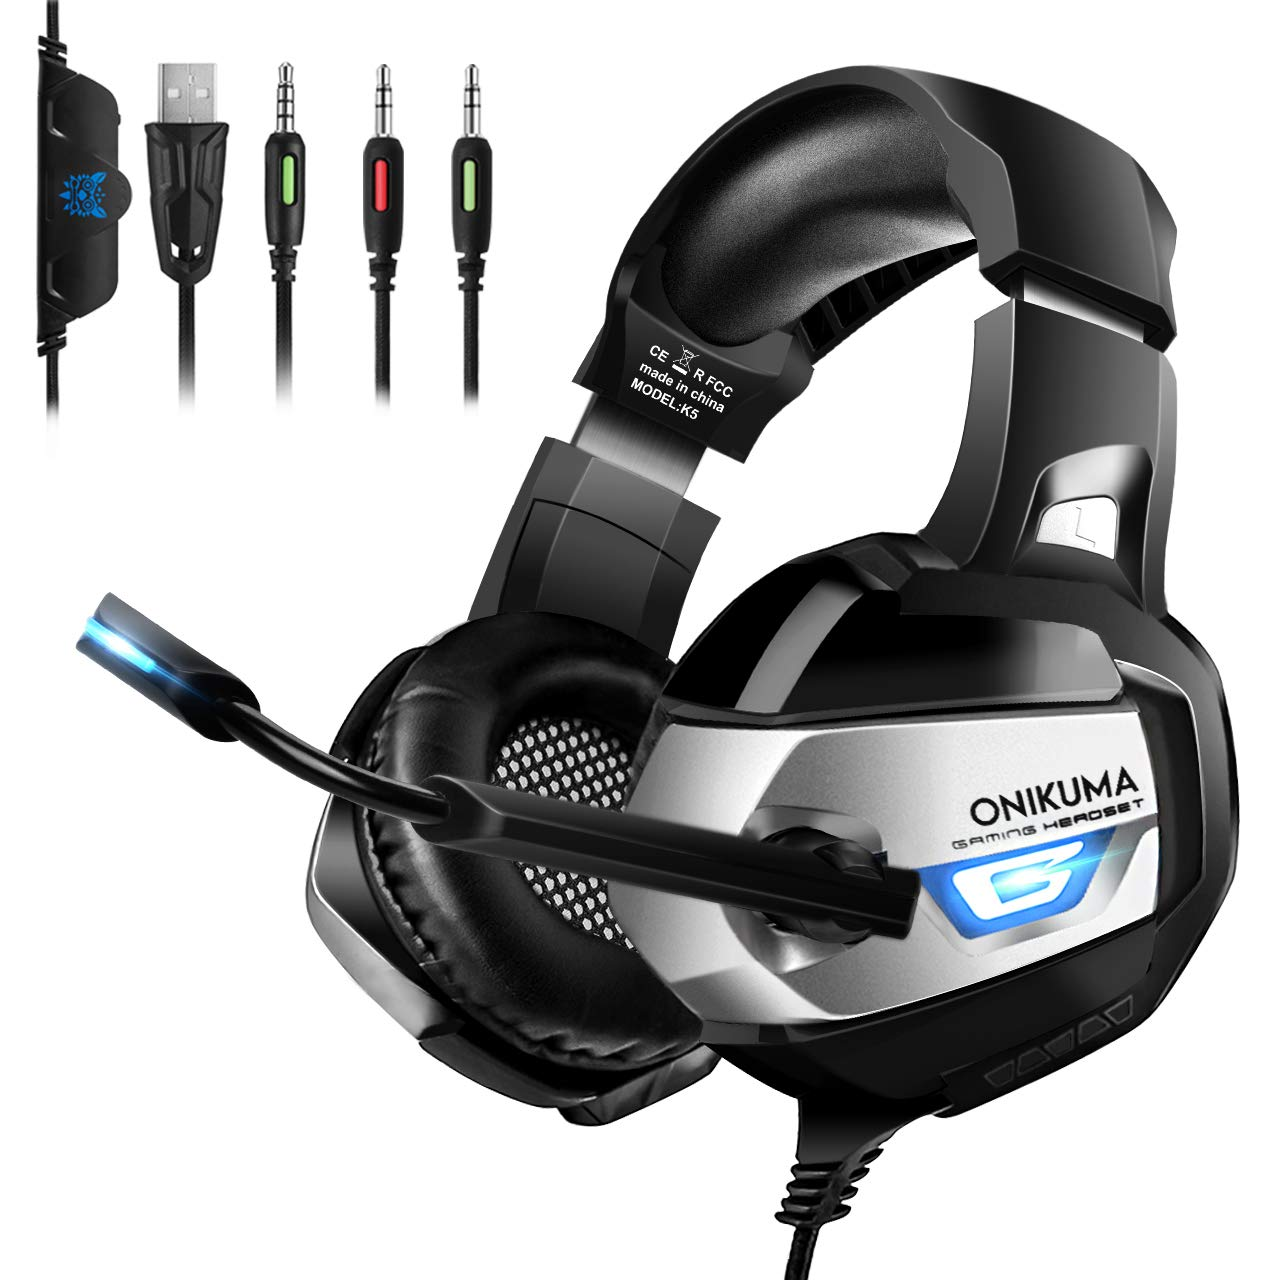 ONIKUMA K5 GAMING HEADSET with Microphone for Nintendo